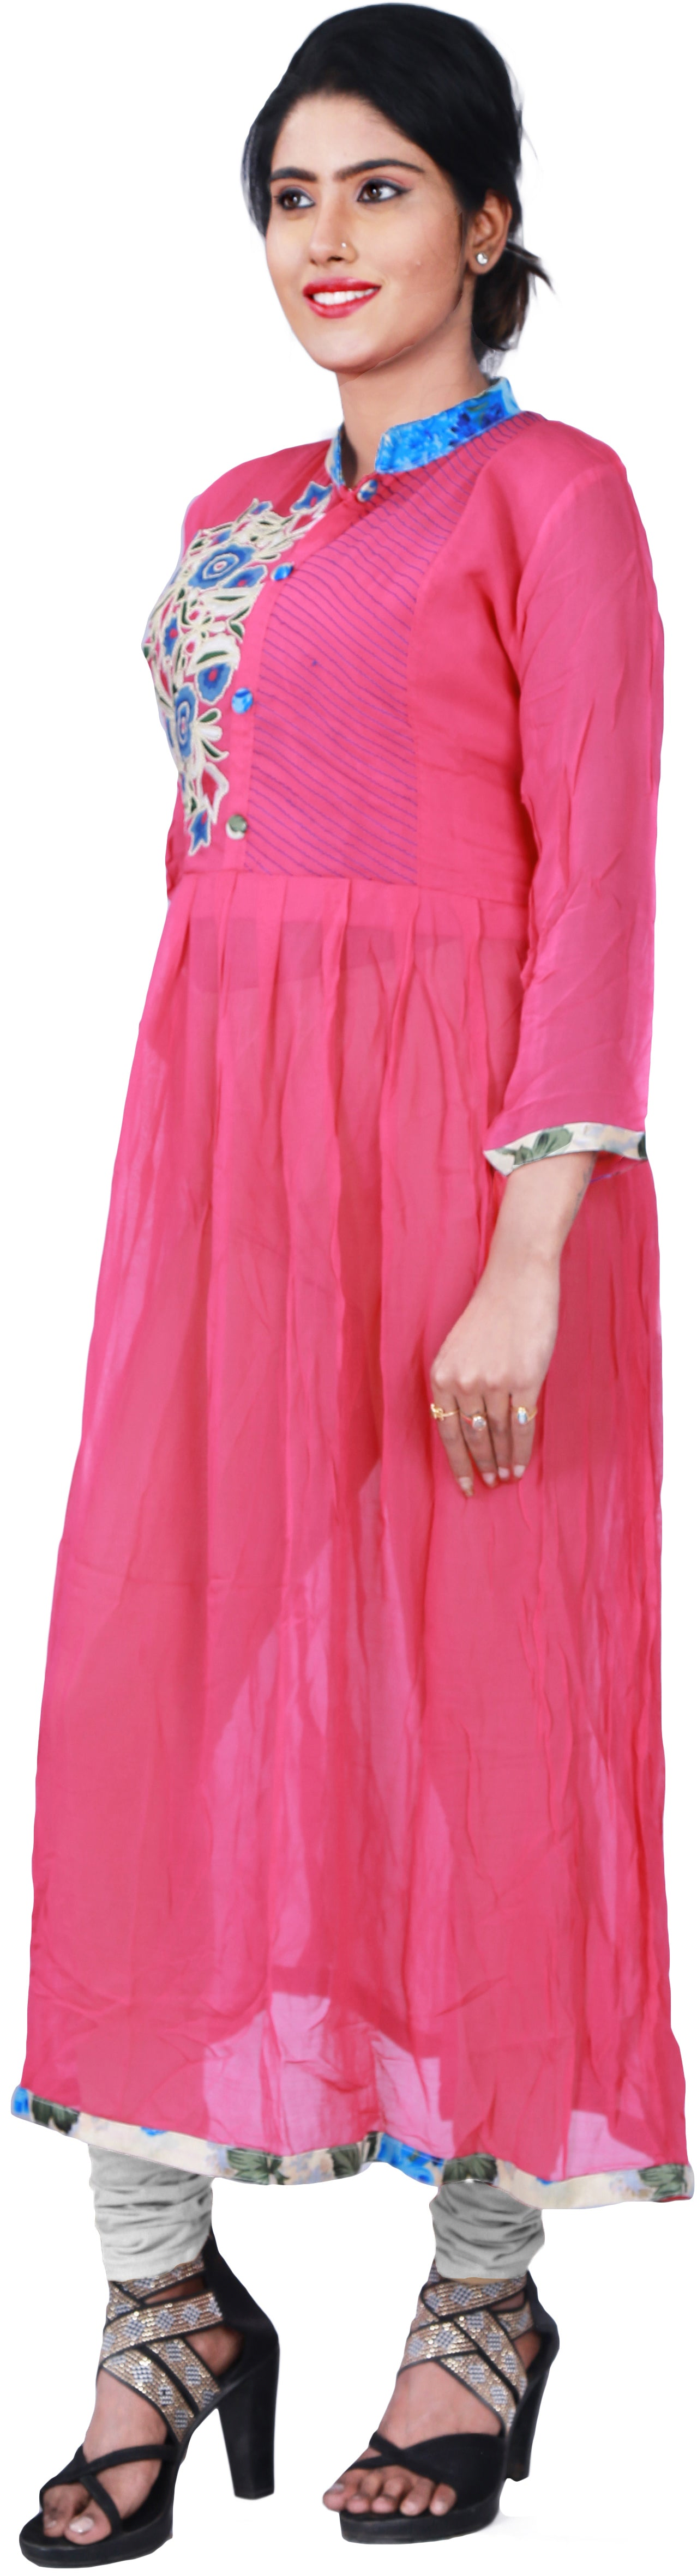 SMSAREE Pink Designer Casual Partywear Geogette Viscos Thread Hand Embroidery Work Stylish Women Kurti Kurta With Free Matching Leggings F180